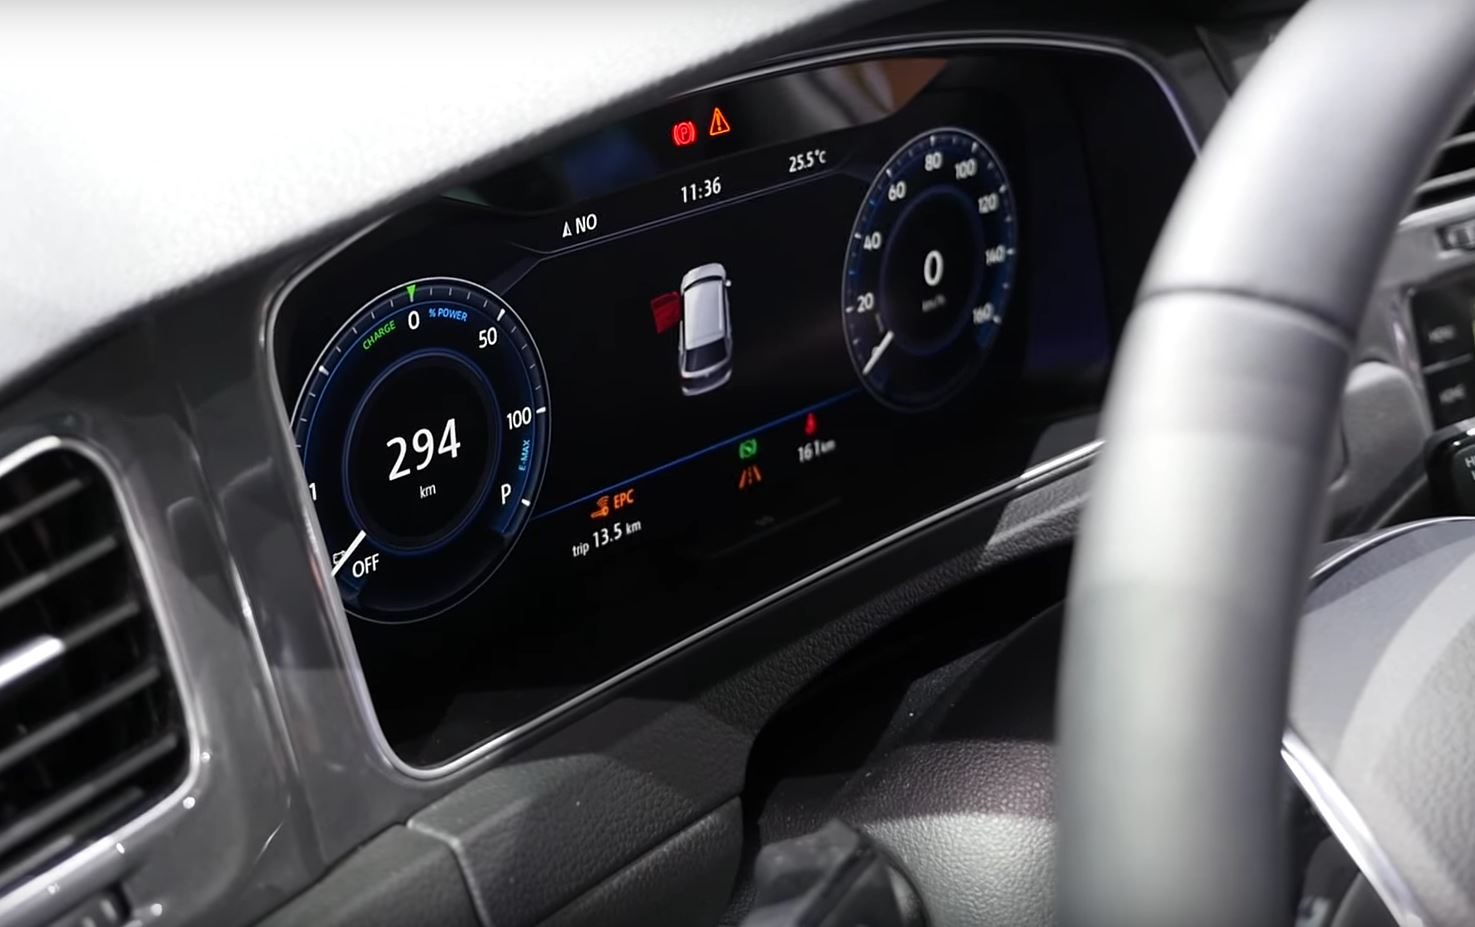 New Golf Interior For 2017 Revealed By E Golf Touch Concept Autoevolution